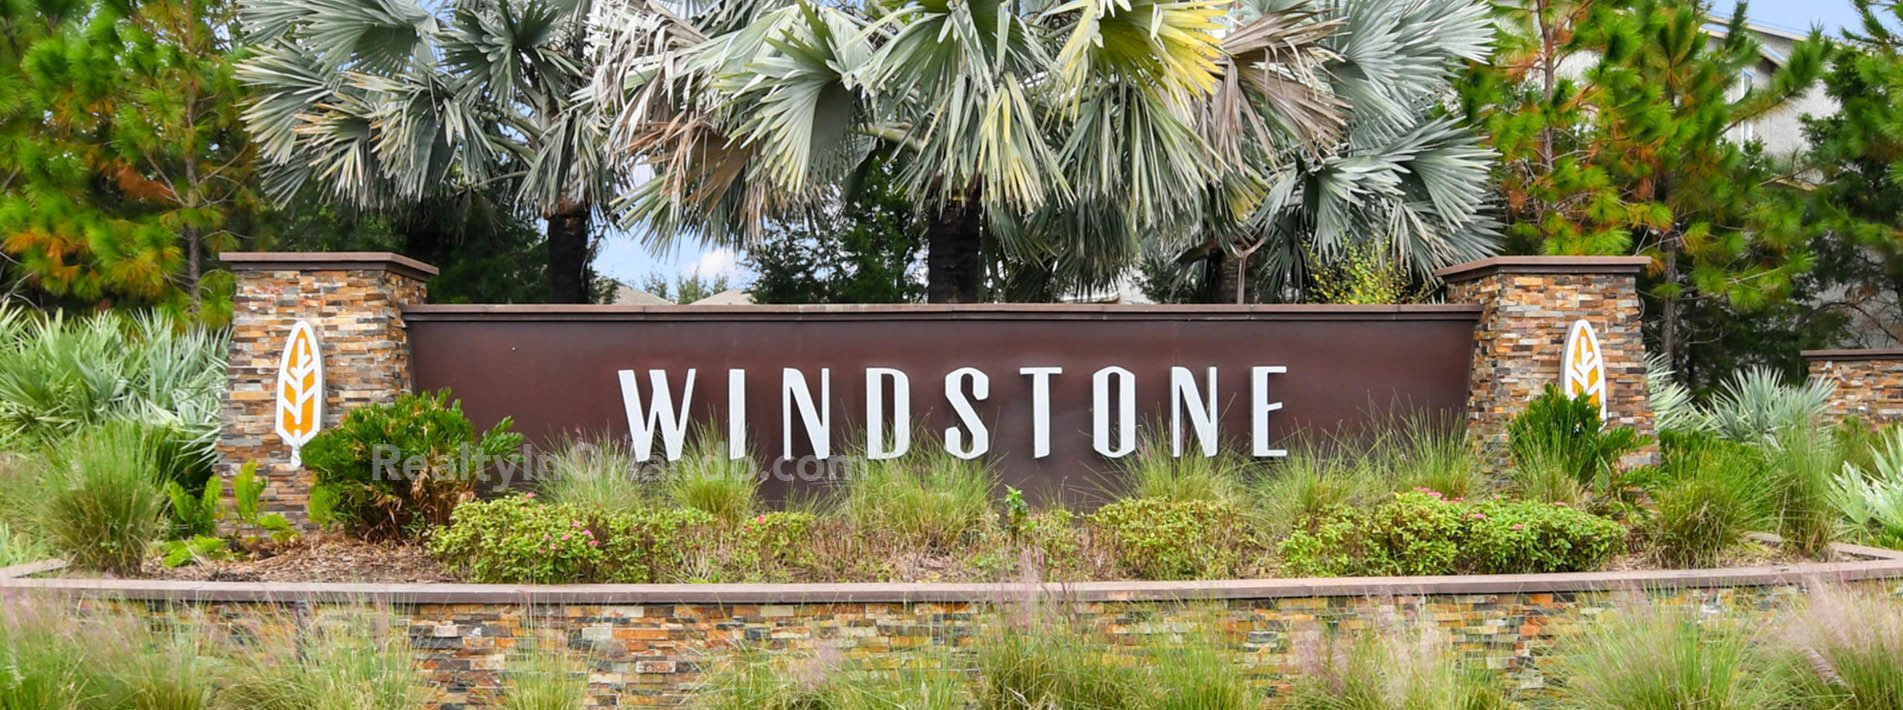 Windstone Windermere Homes for Sale